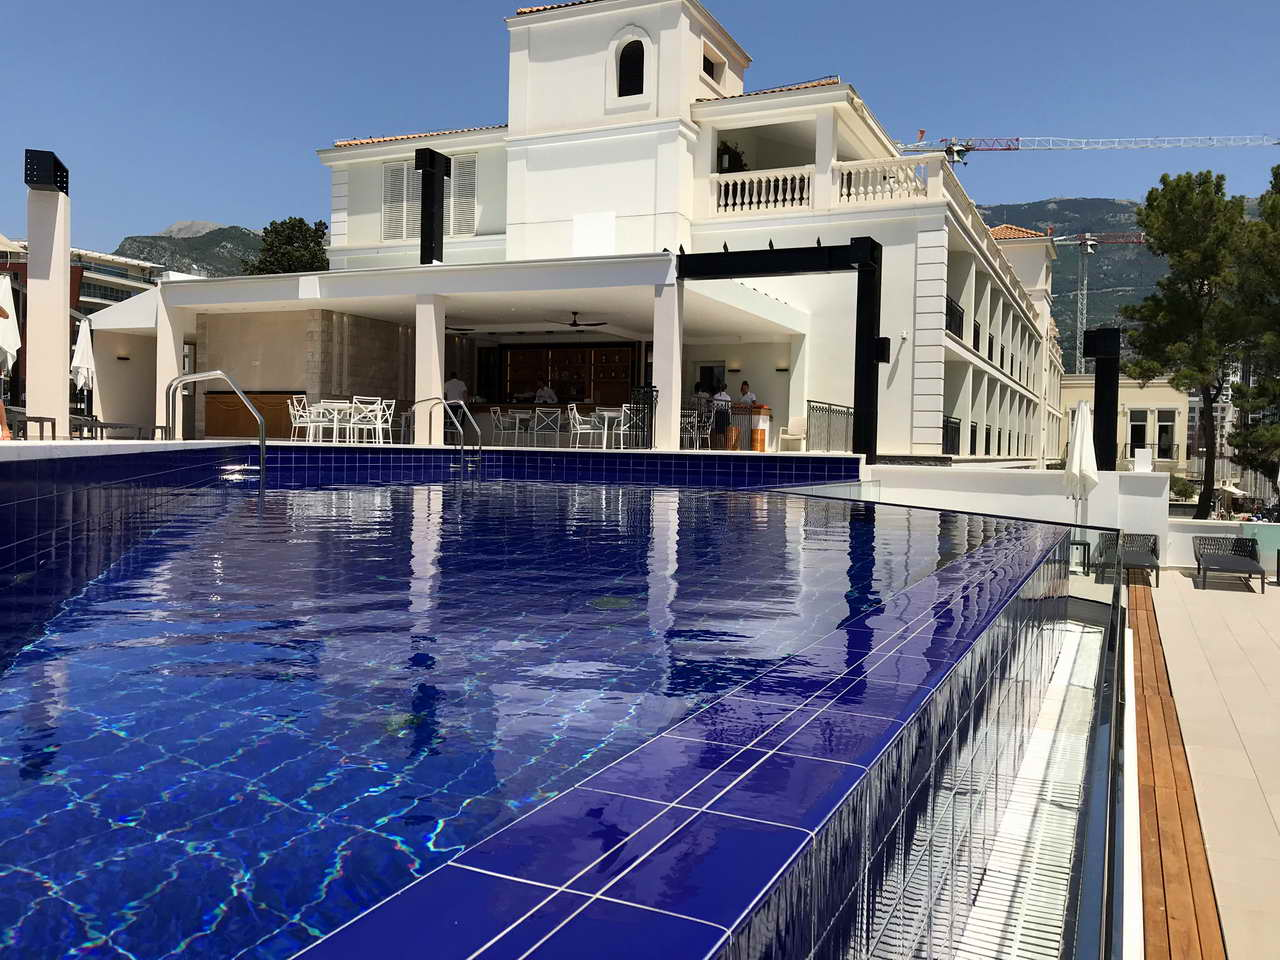 Swimming pool - Hotels near me with a swimming pool ...